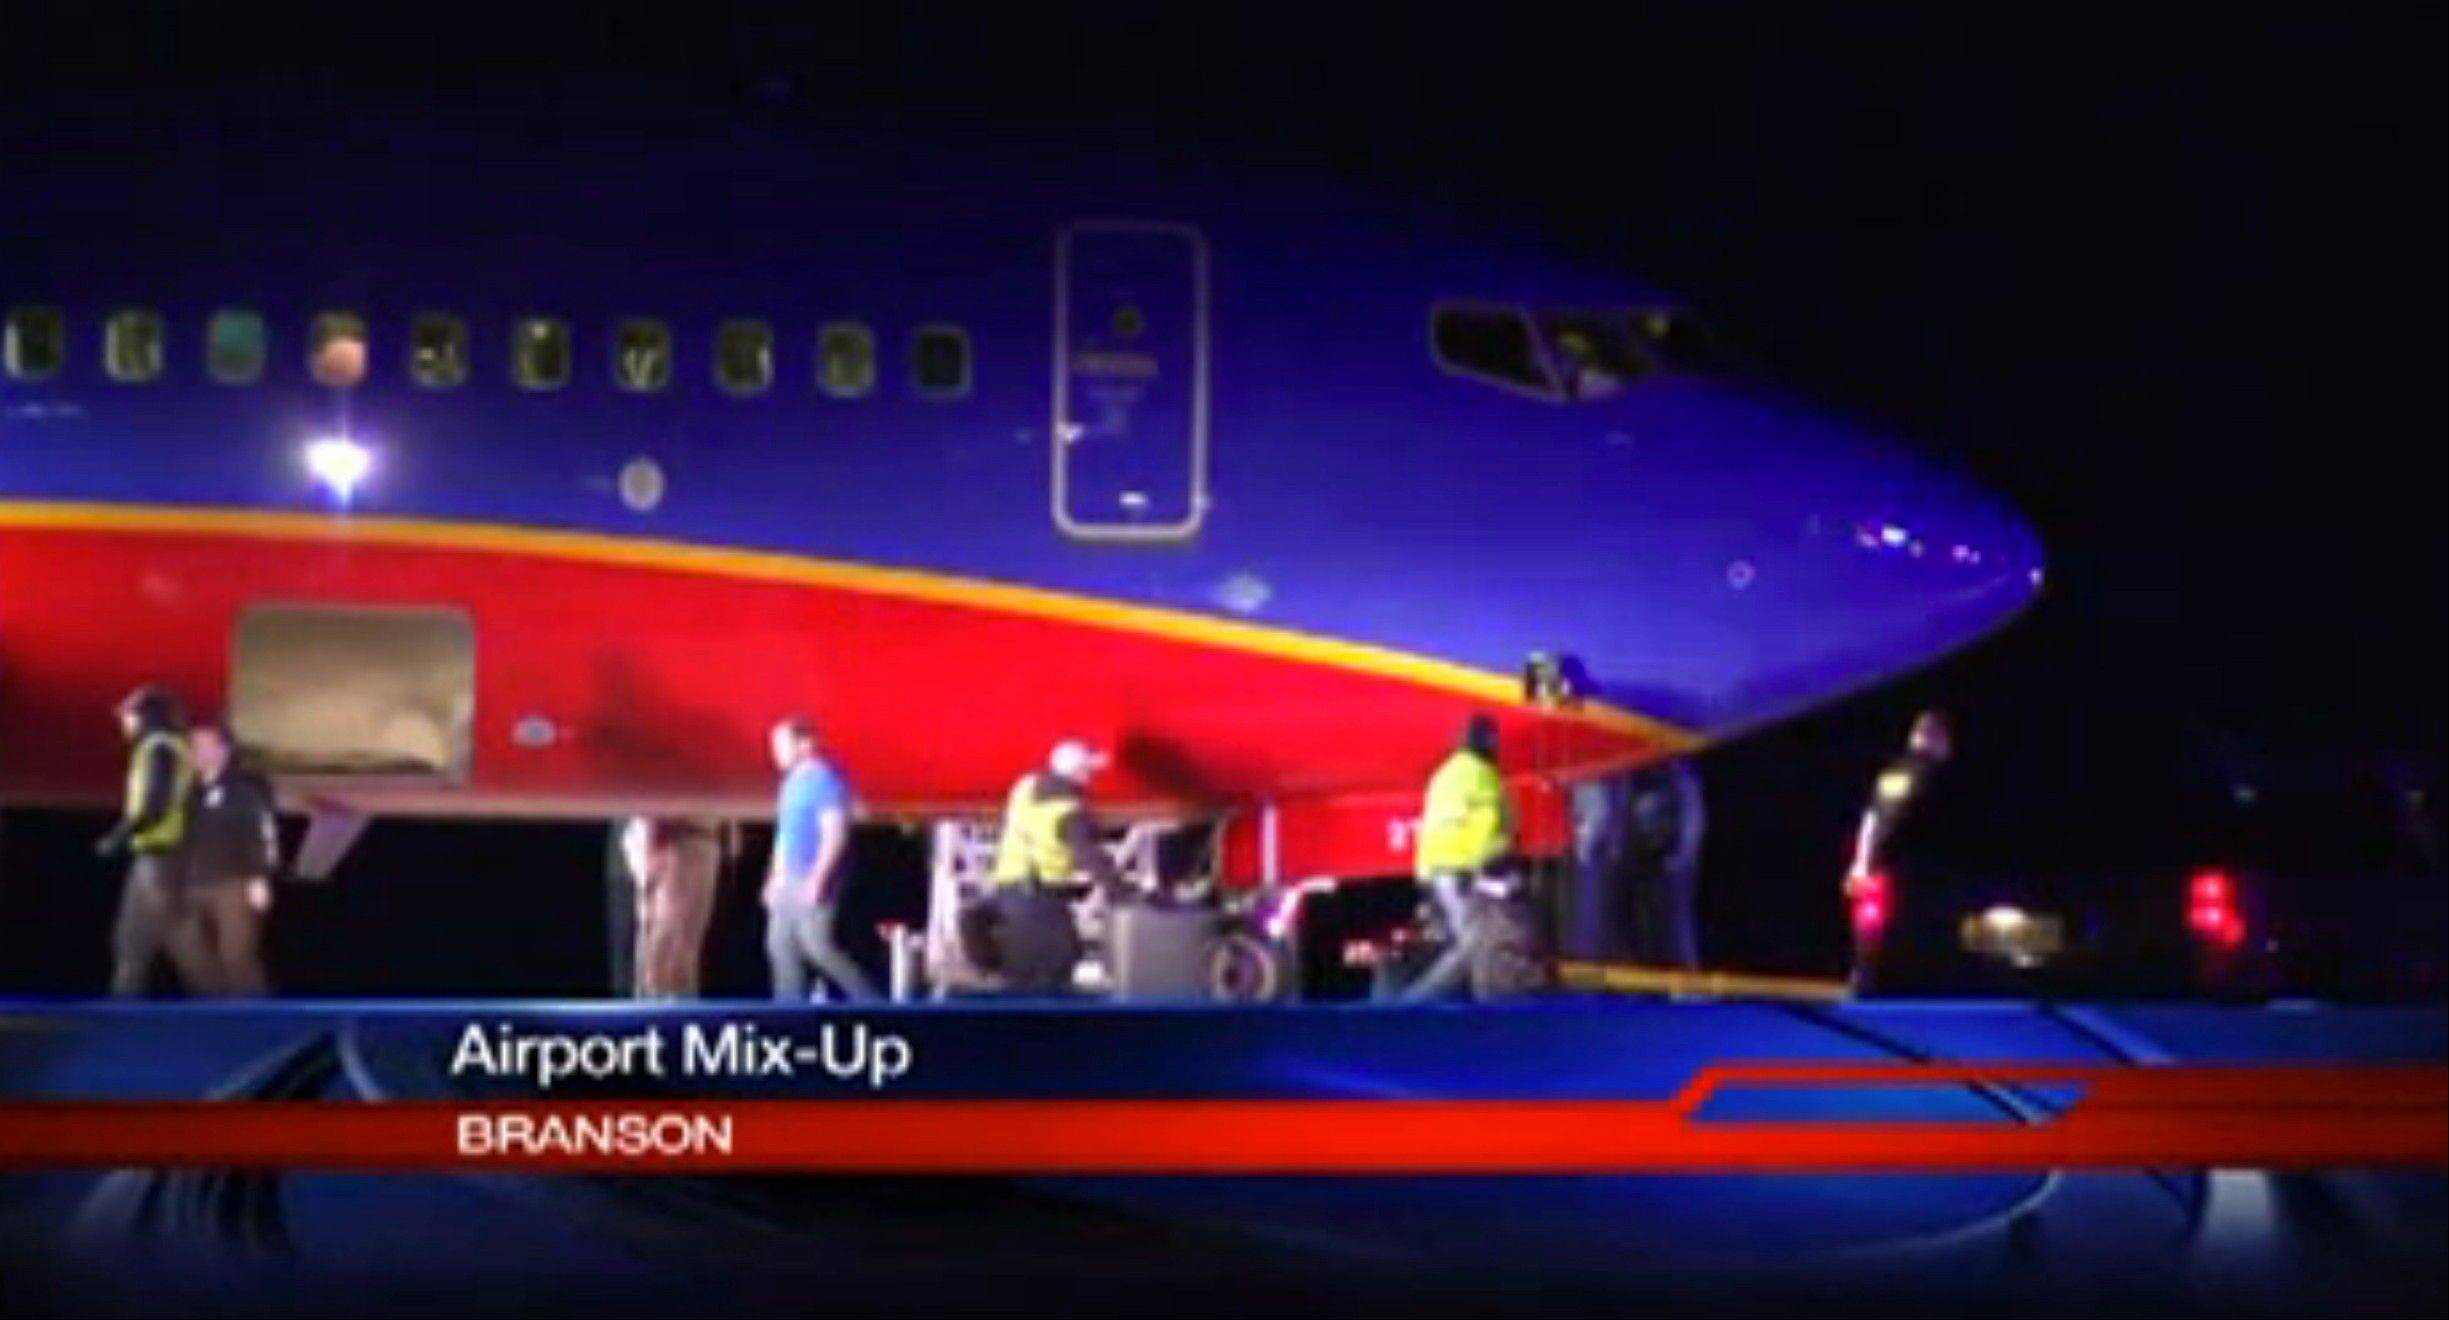 A Southwest Airlines flight that was scheduled to arrive Sunday at Branson Airport in southwest Missouri instead landed at an airport 7 miles north � with a runway about half the size of the intended destination.